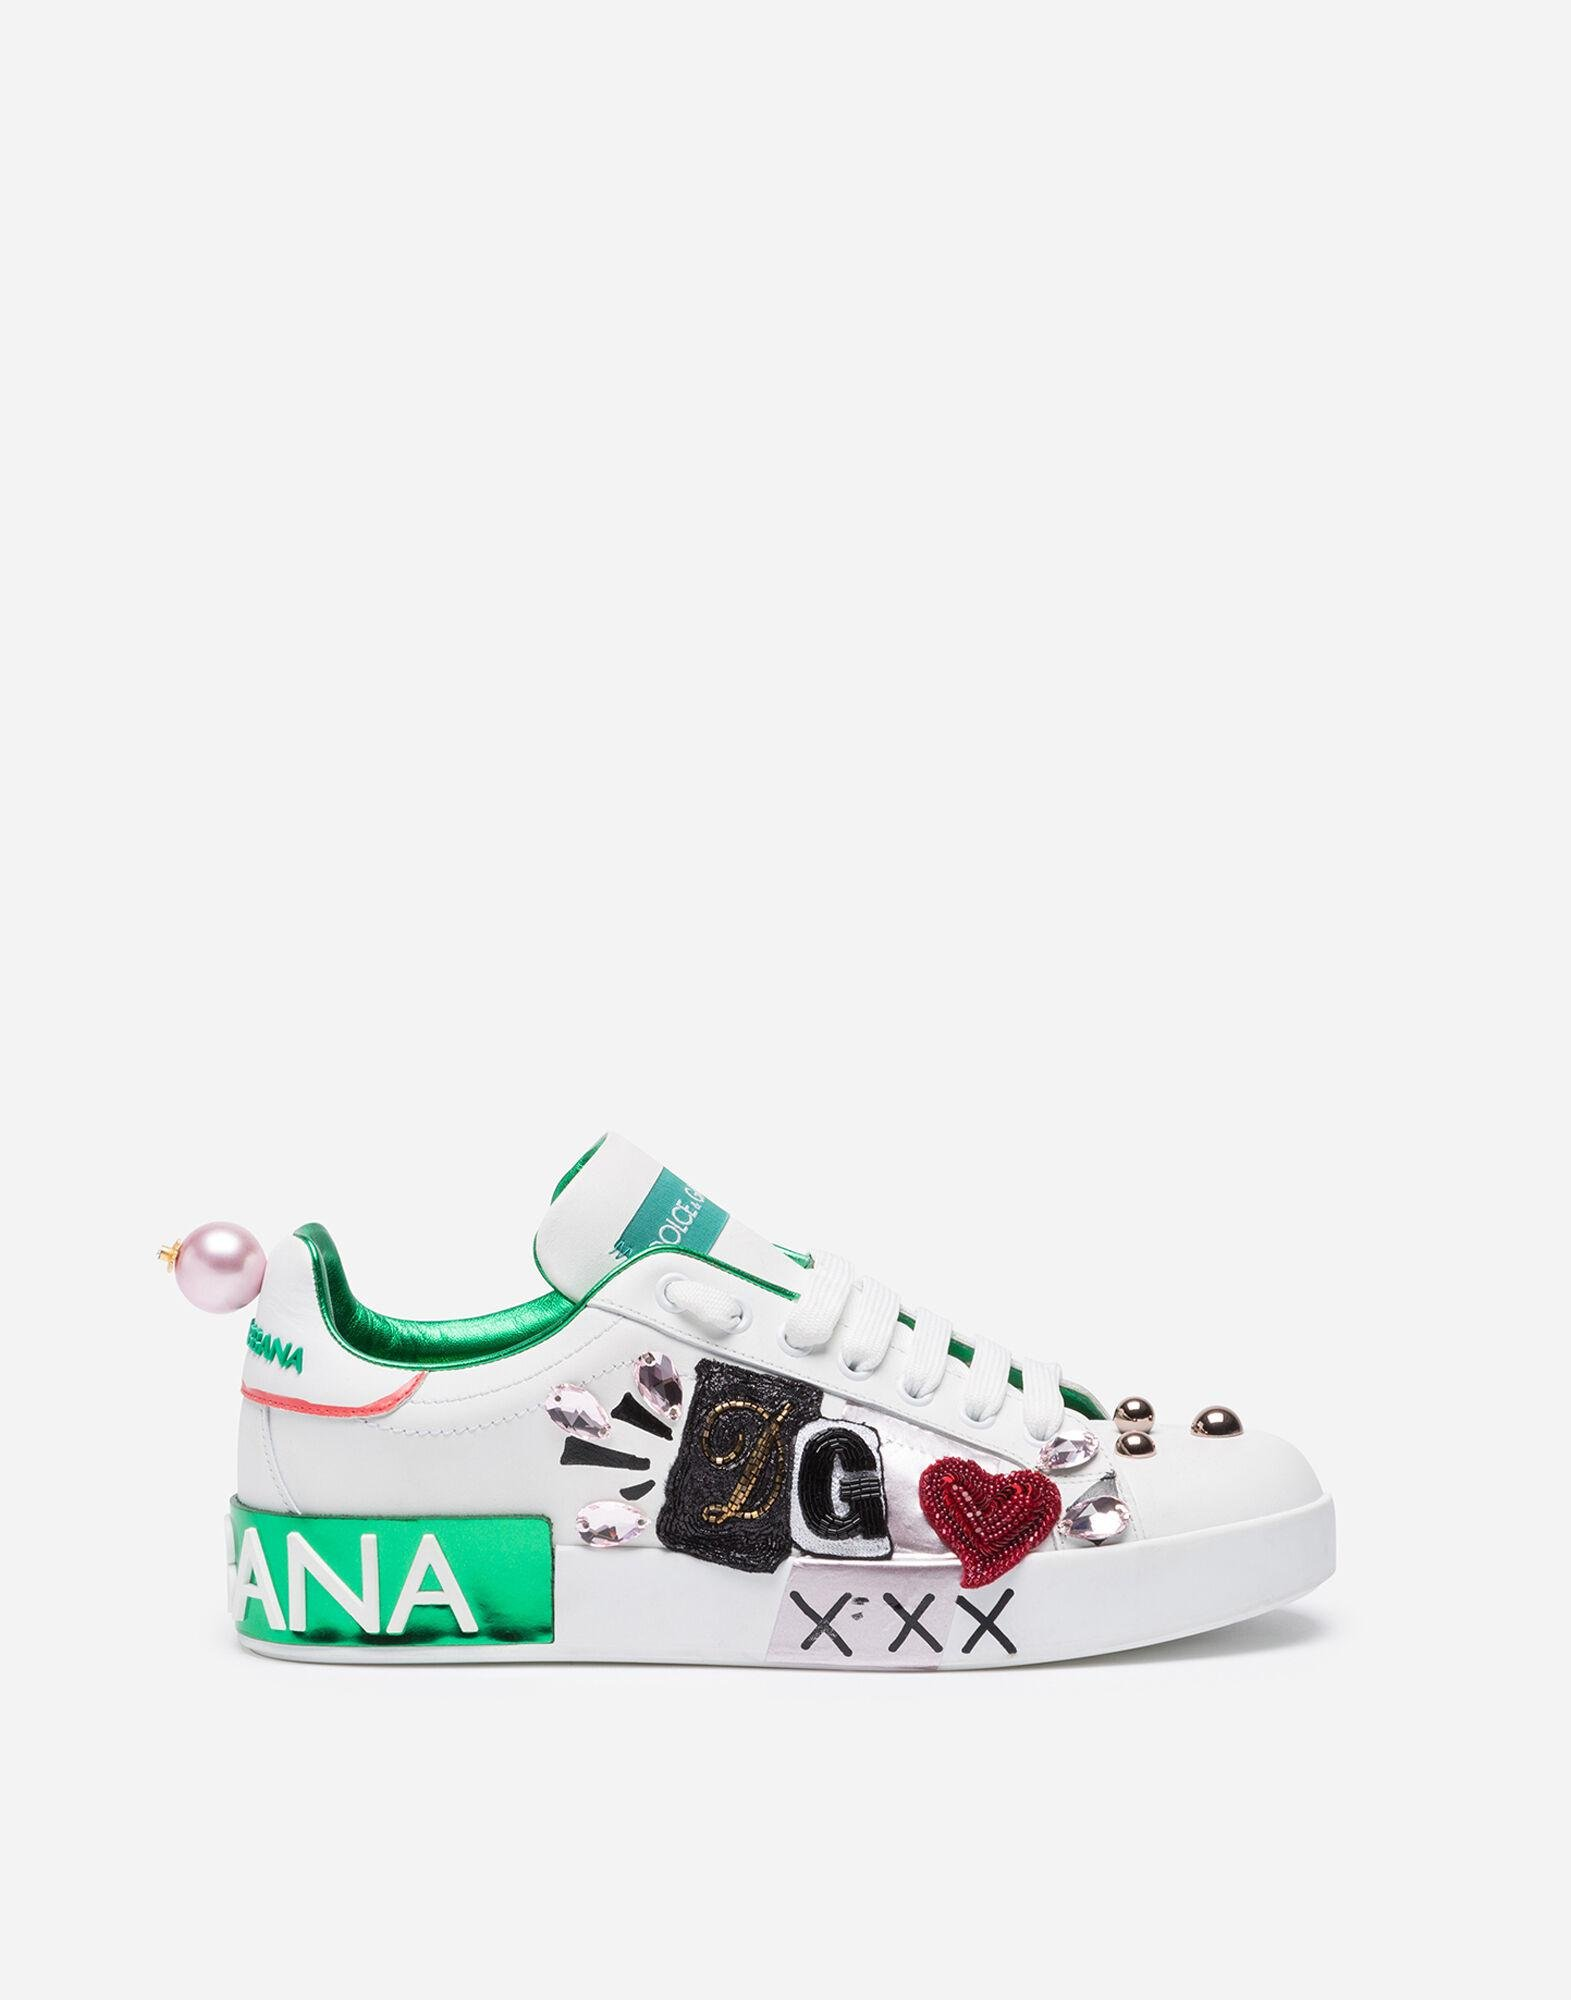 Portofino sneakers in nappa calfskin with patch and embroidery